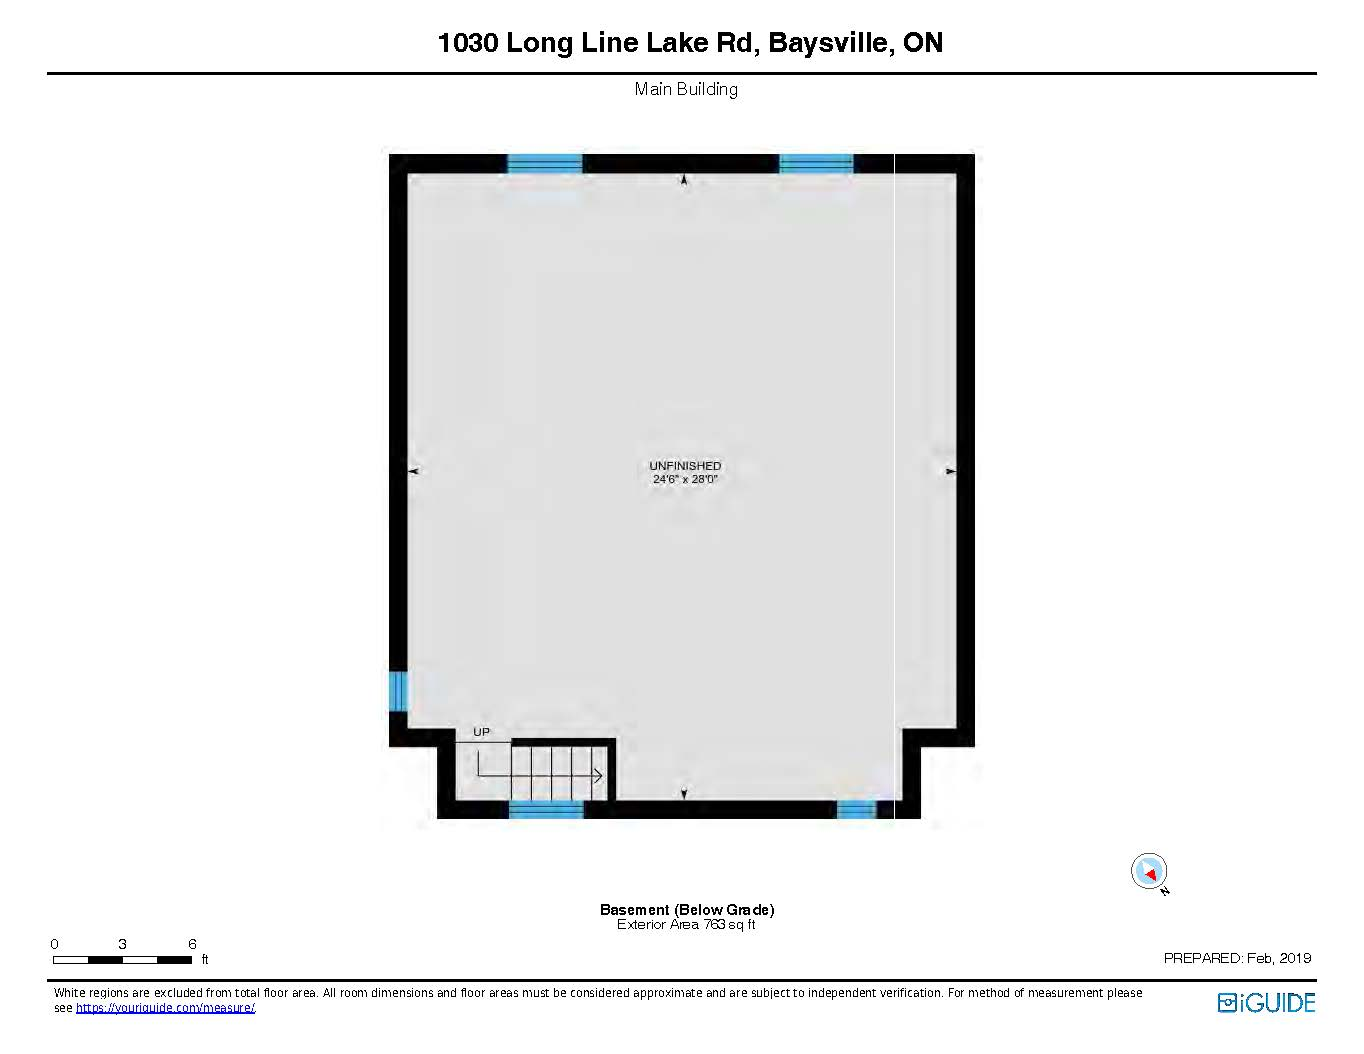 1030 Long Line Lake Road Baysville, ON Floor Plan